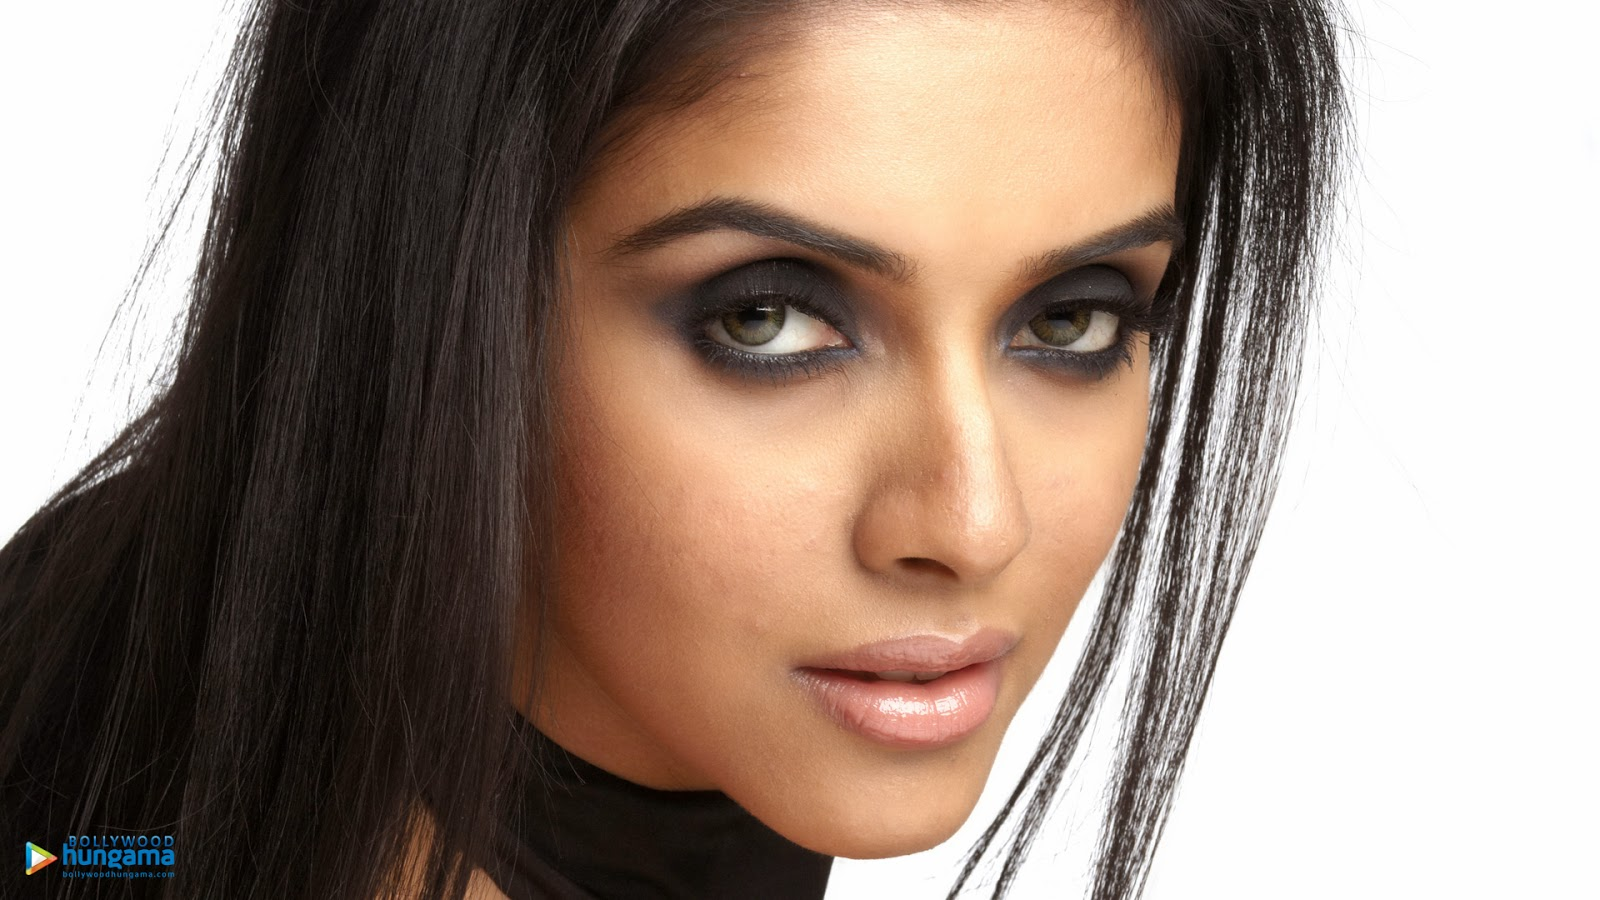 Beautiful asin Eyes HD wallpaper for download